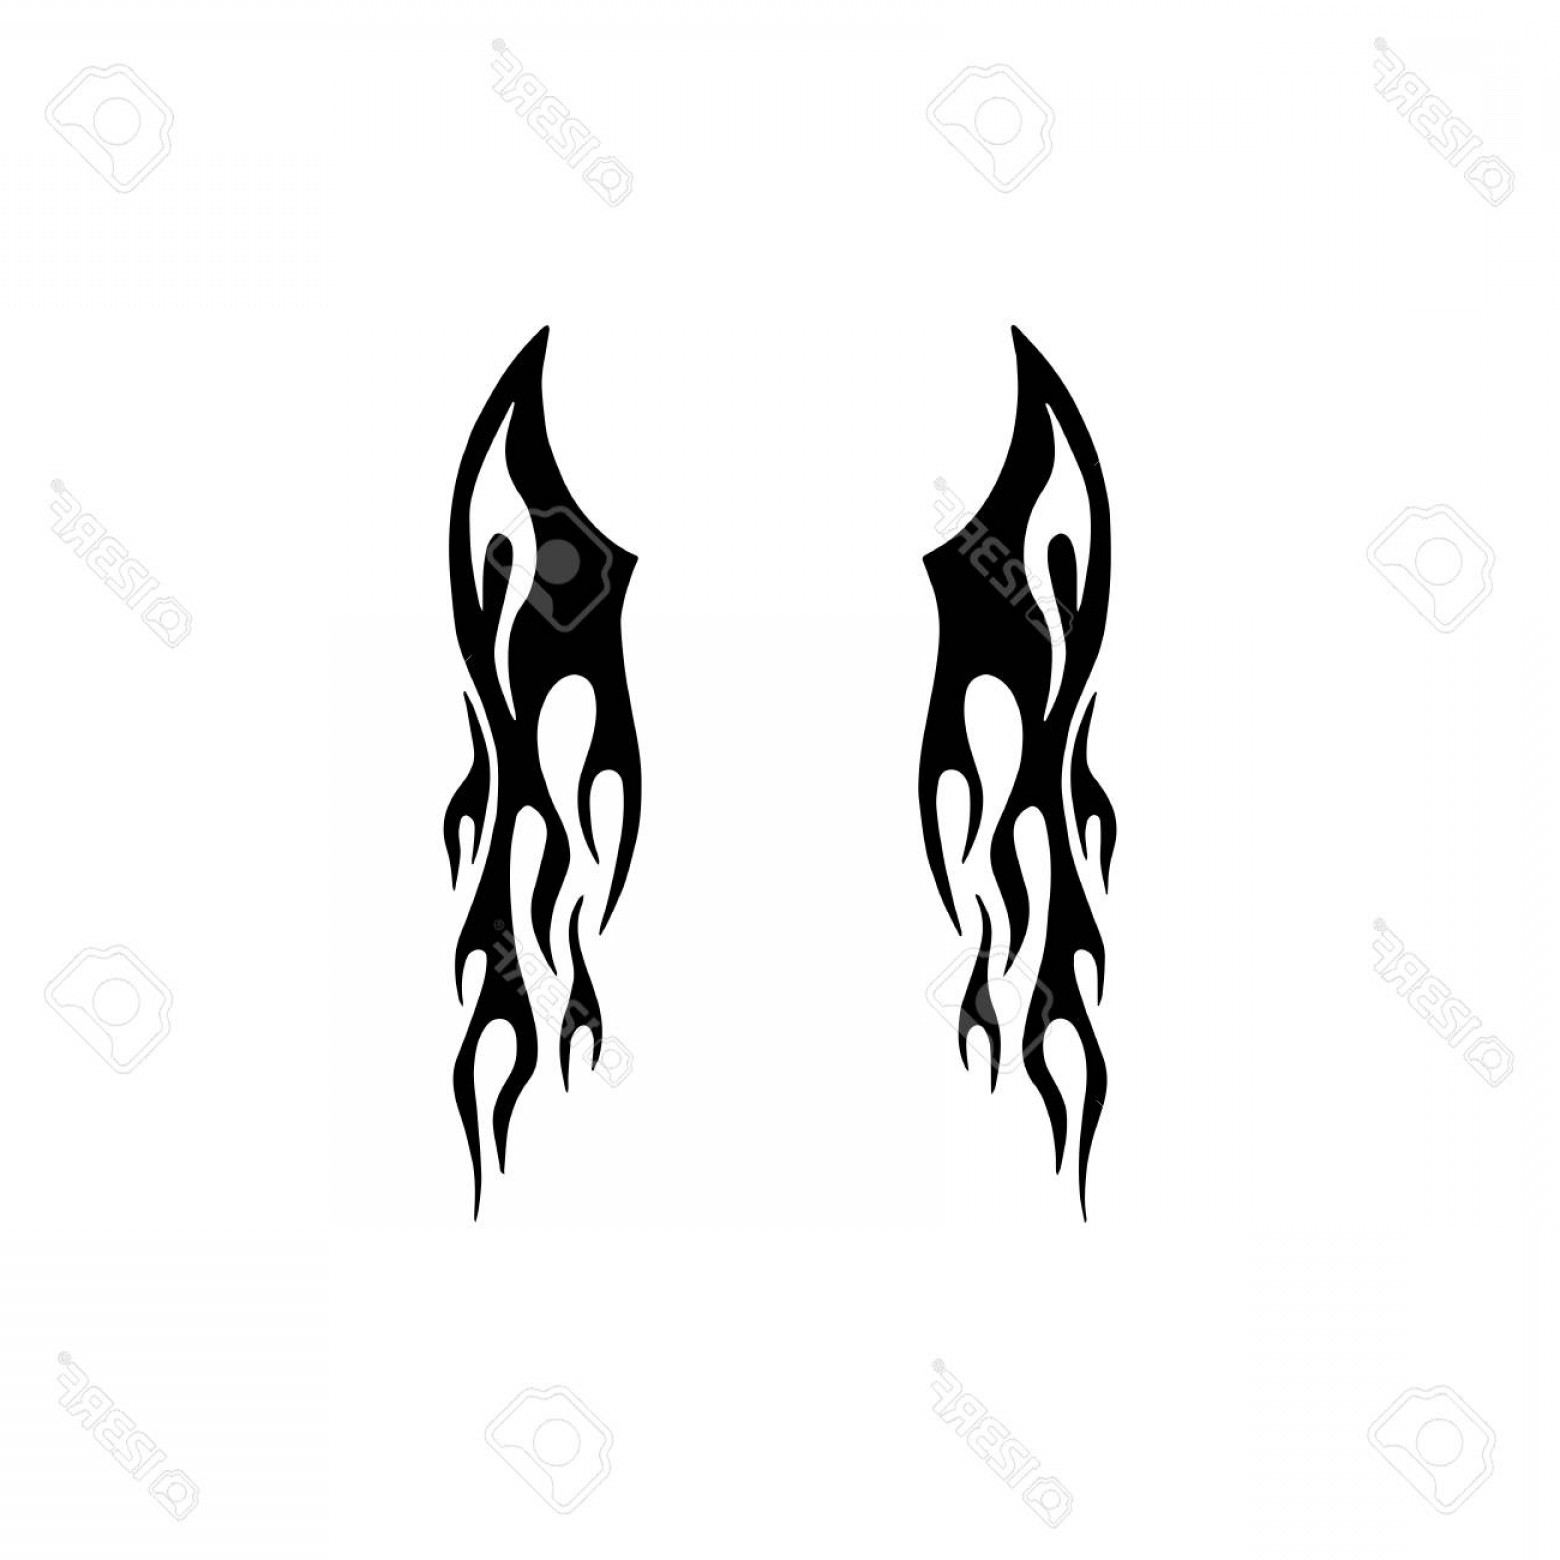 Angel Wings Tattoo Tribal Vector: Tribal Wing Tattoo Design Royalty Free Cliparts Vectors And Stock Fbbbe